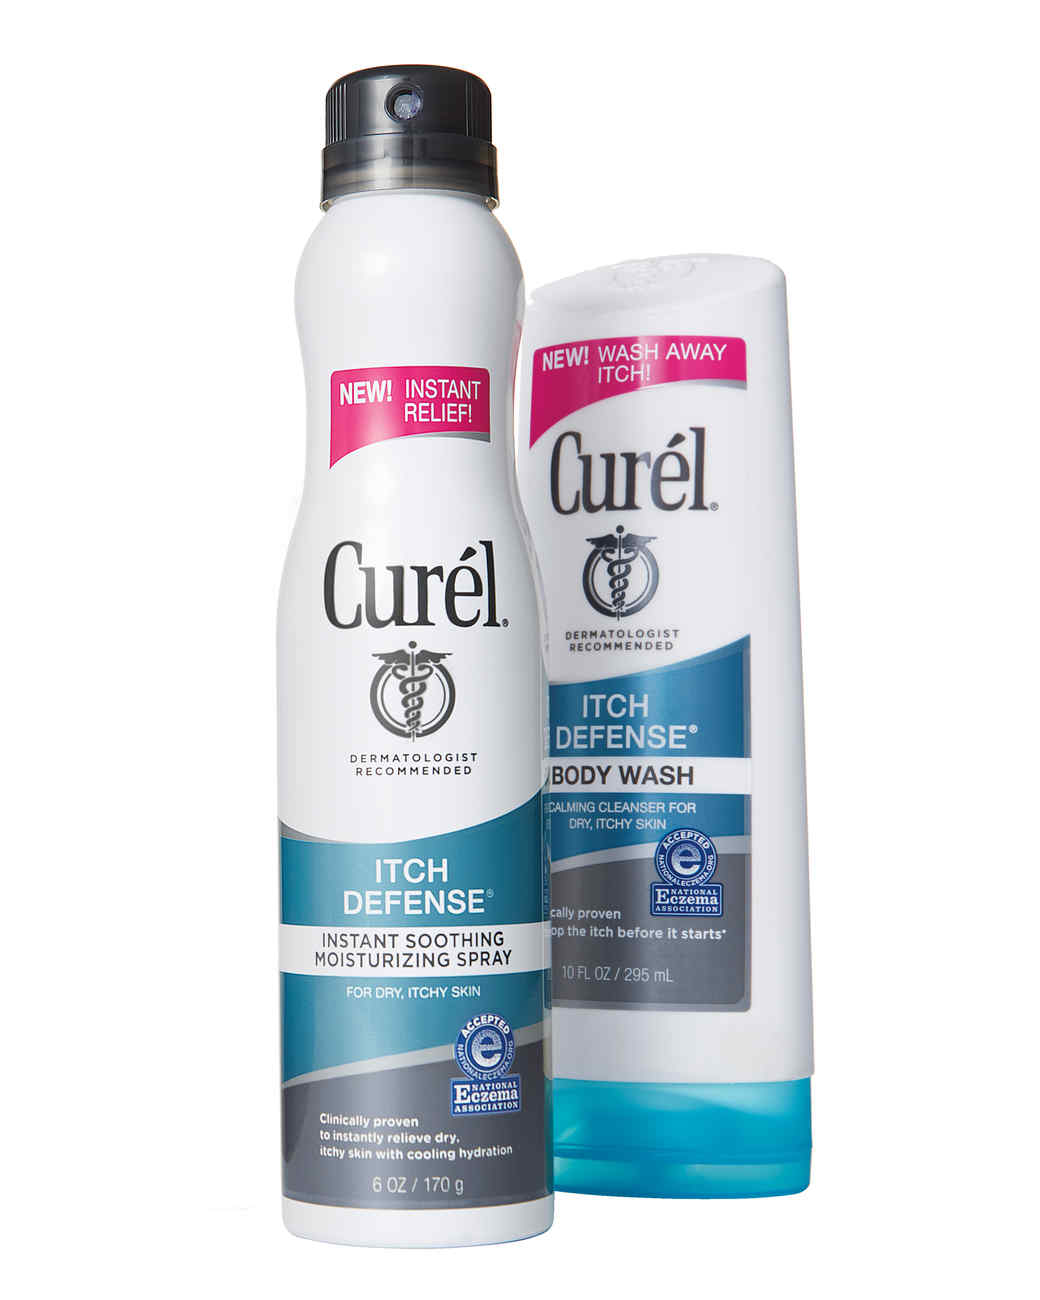 curel-itch-defense-body-wash-and-spray-122-d112618.jpg